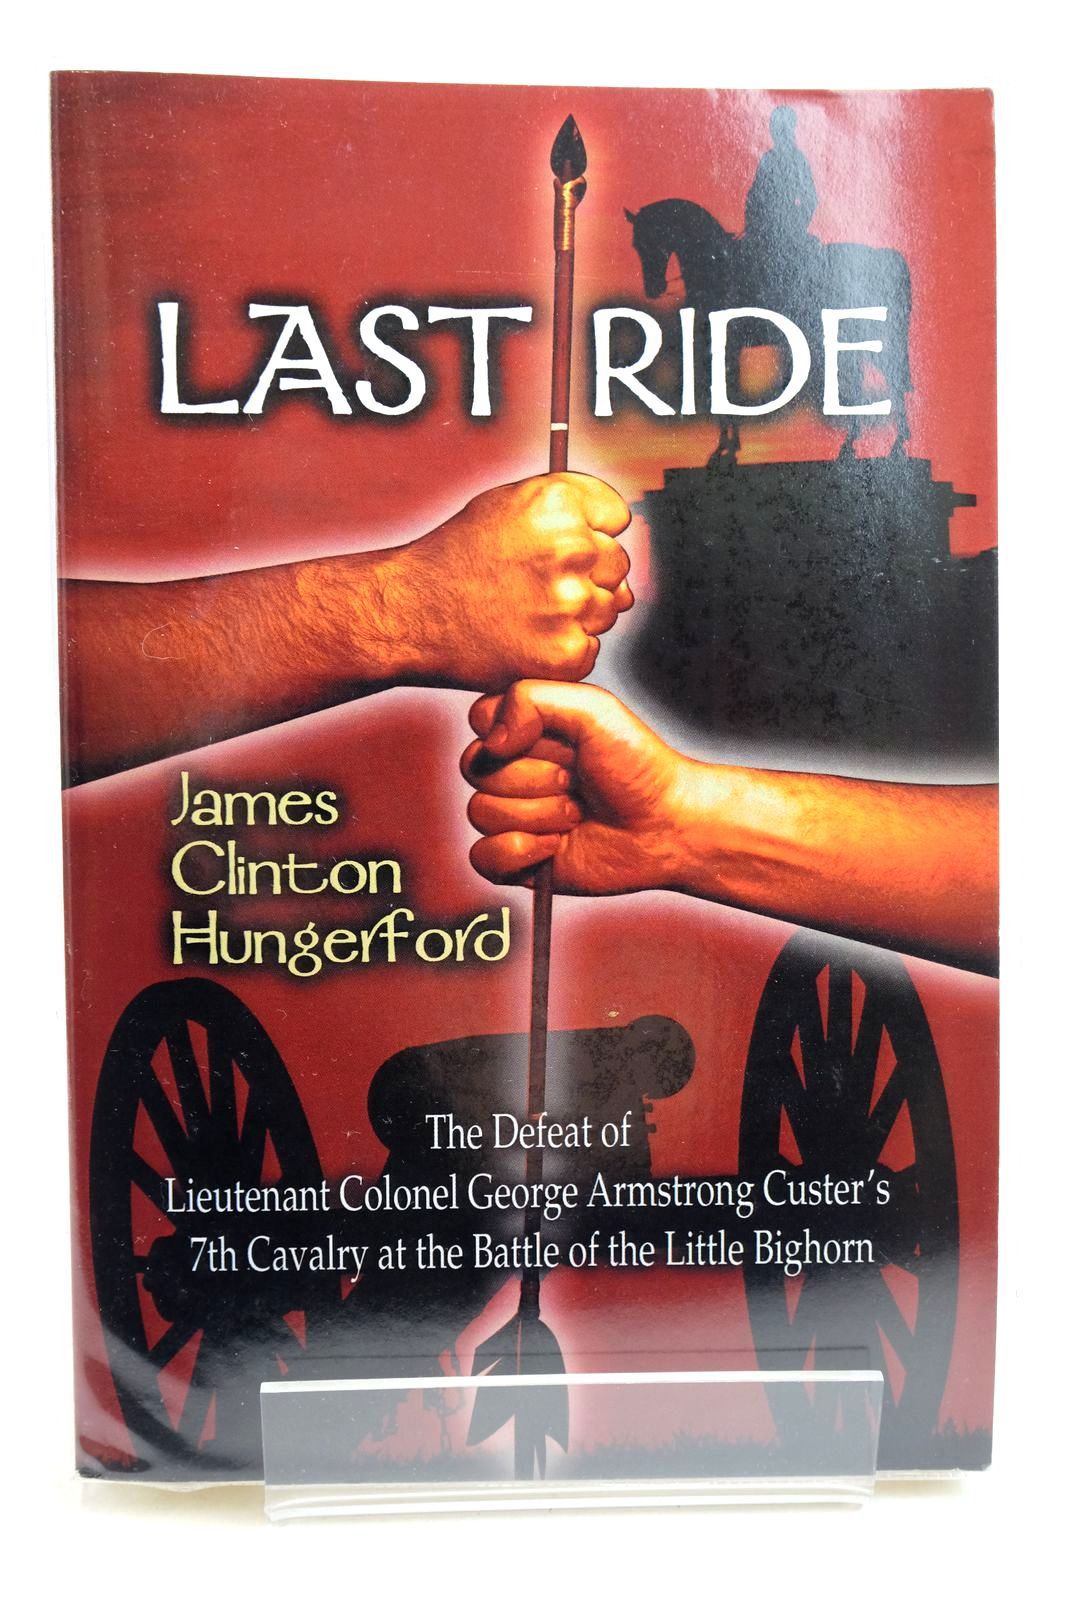 Photo of LAST RIDE: THE DEFEAT OF LIEUTENANT COLONEL GEORGE ARMSTRONG CUSTER'S 7TH CAVARY AT THE BATTLE OF LITTLE BIGHORN written by Hungerford, James Clinton published by Publishamerica (STOCK CODE: 2134948)  for sale by Stella & Rose's Books